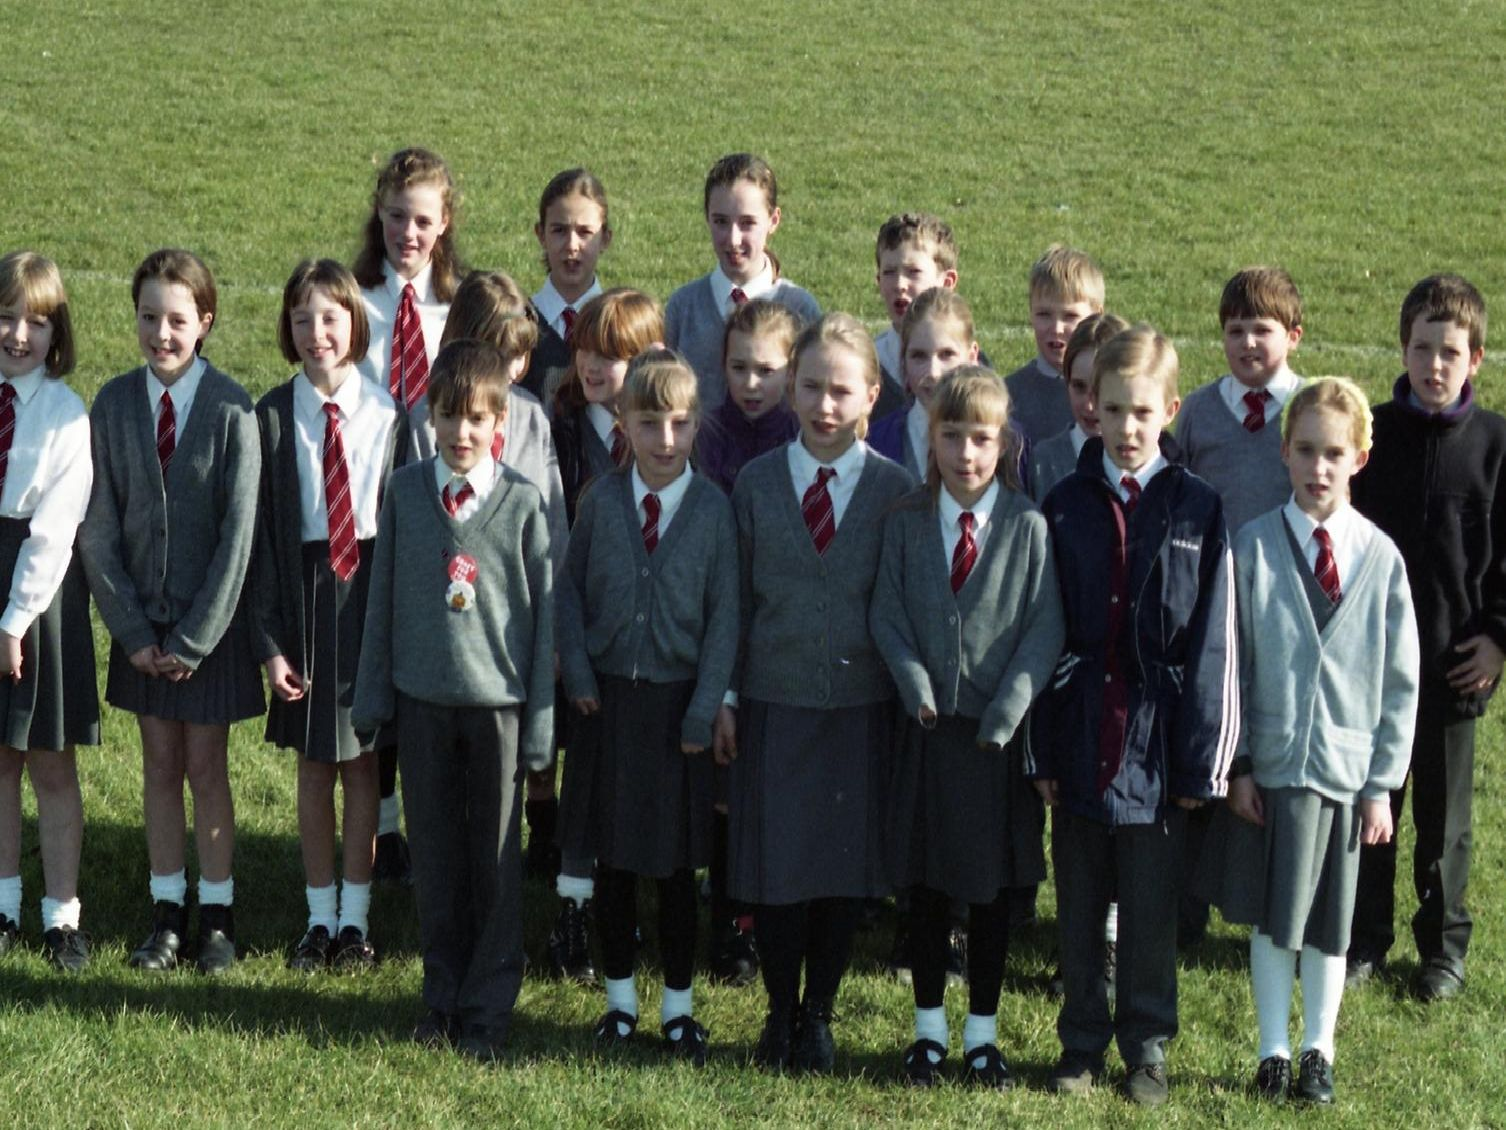 St Peter's School choir, Chorley